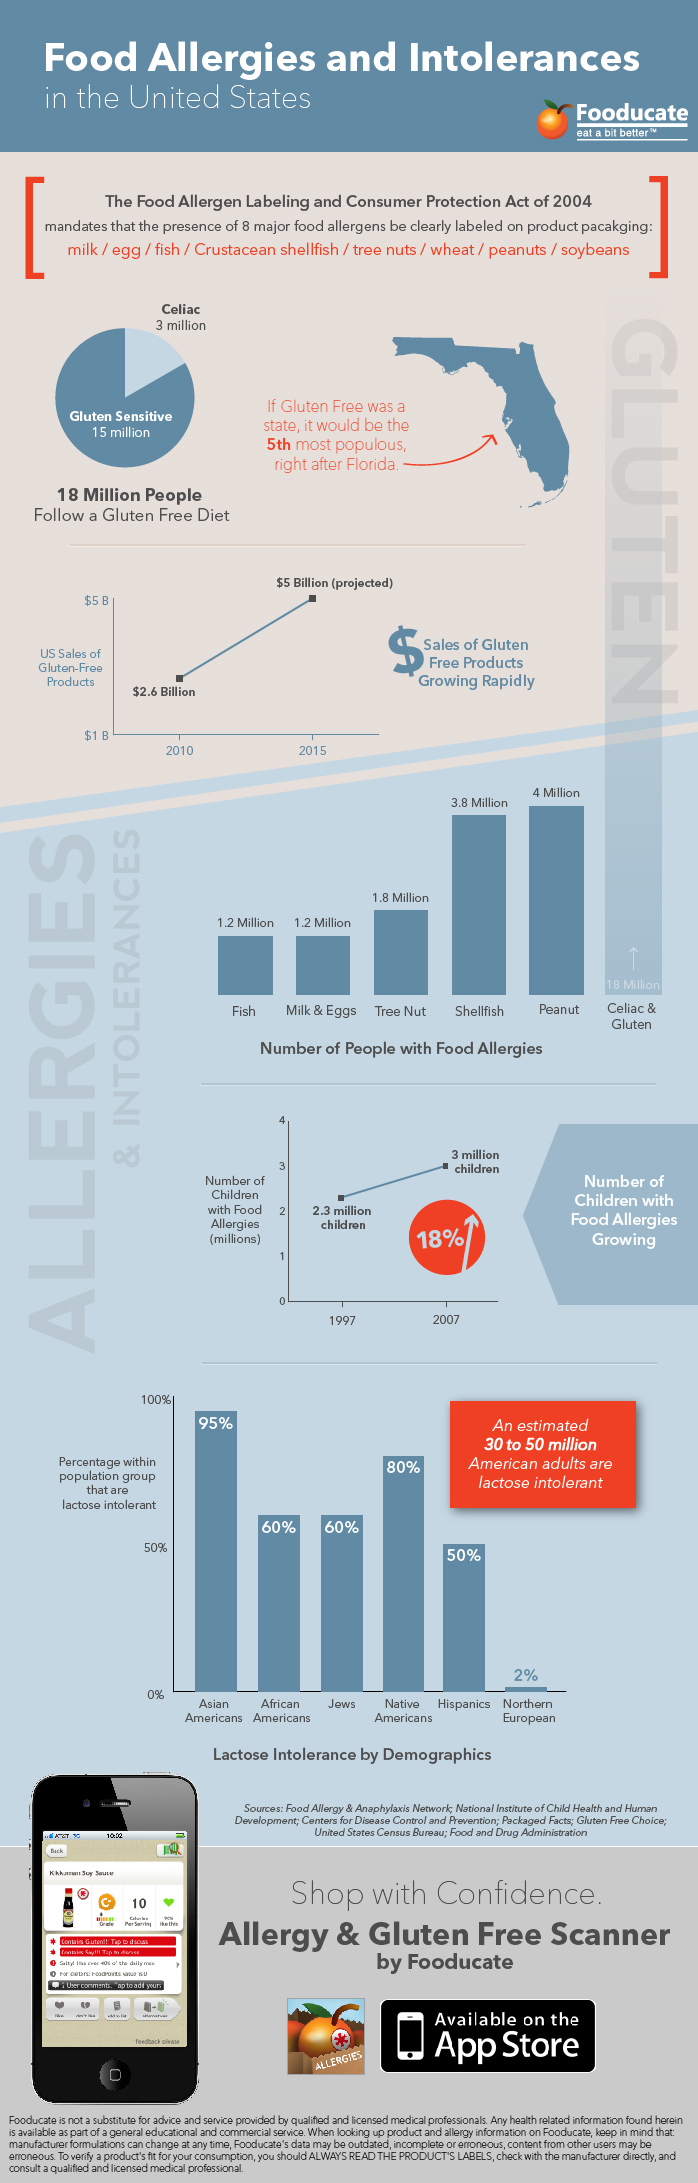 Gluten, Food Allergies and Intolerances in the U.S. [Infographic]